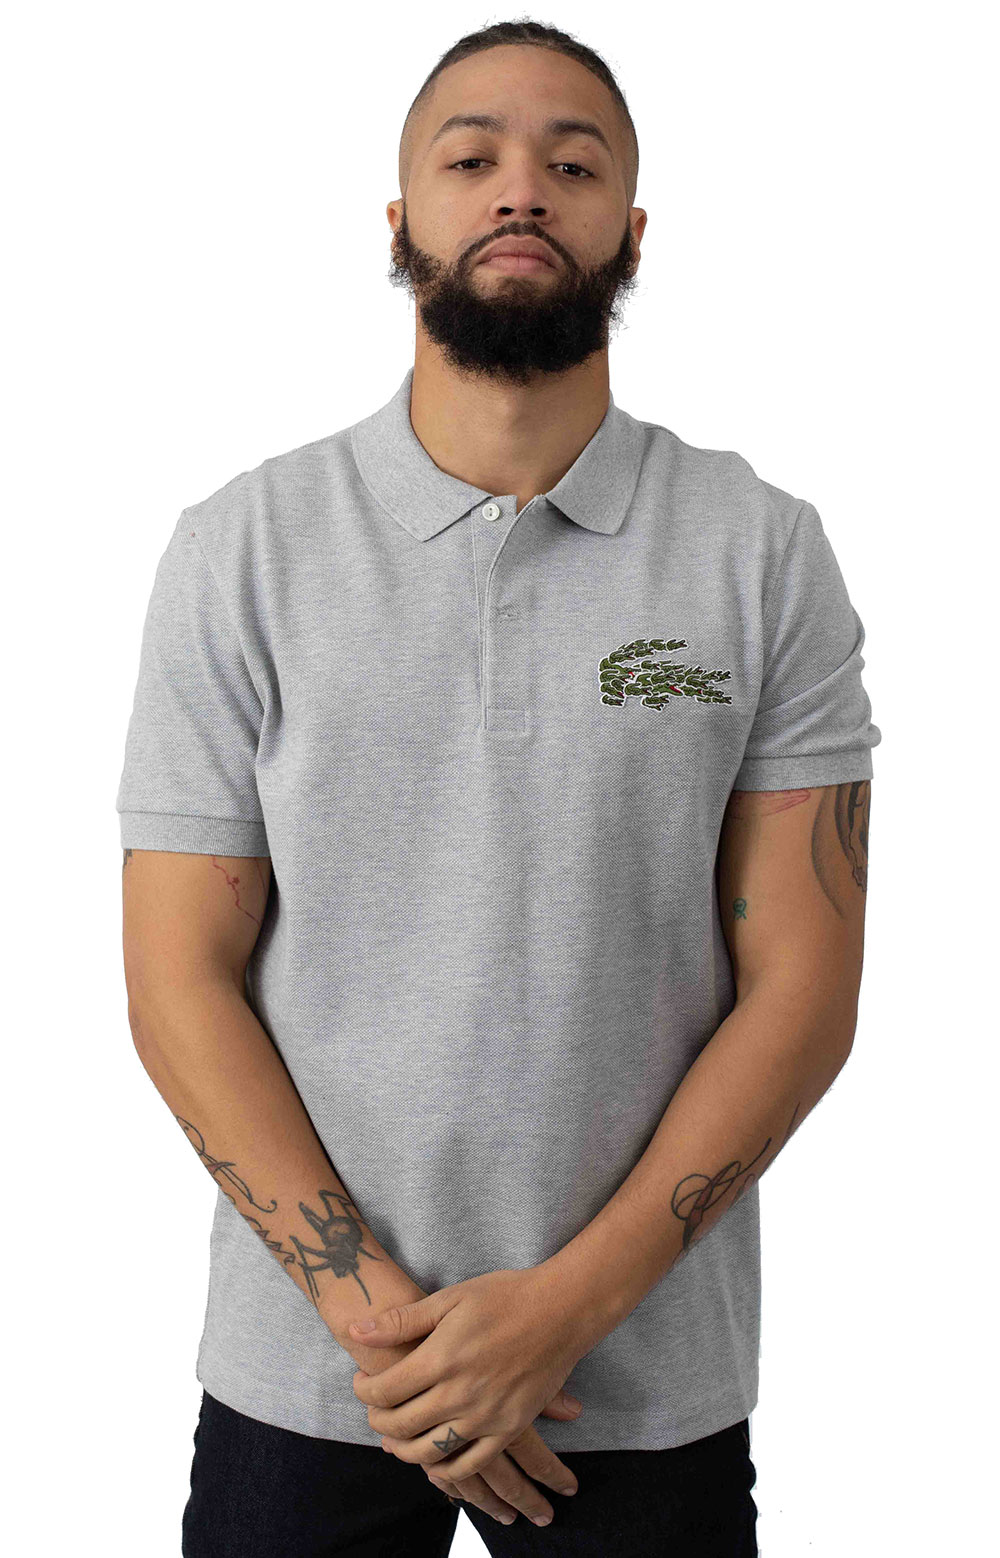 Regular Fit Croc Magic Cotton Pique Polo - Grey Chine